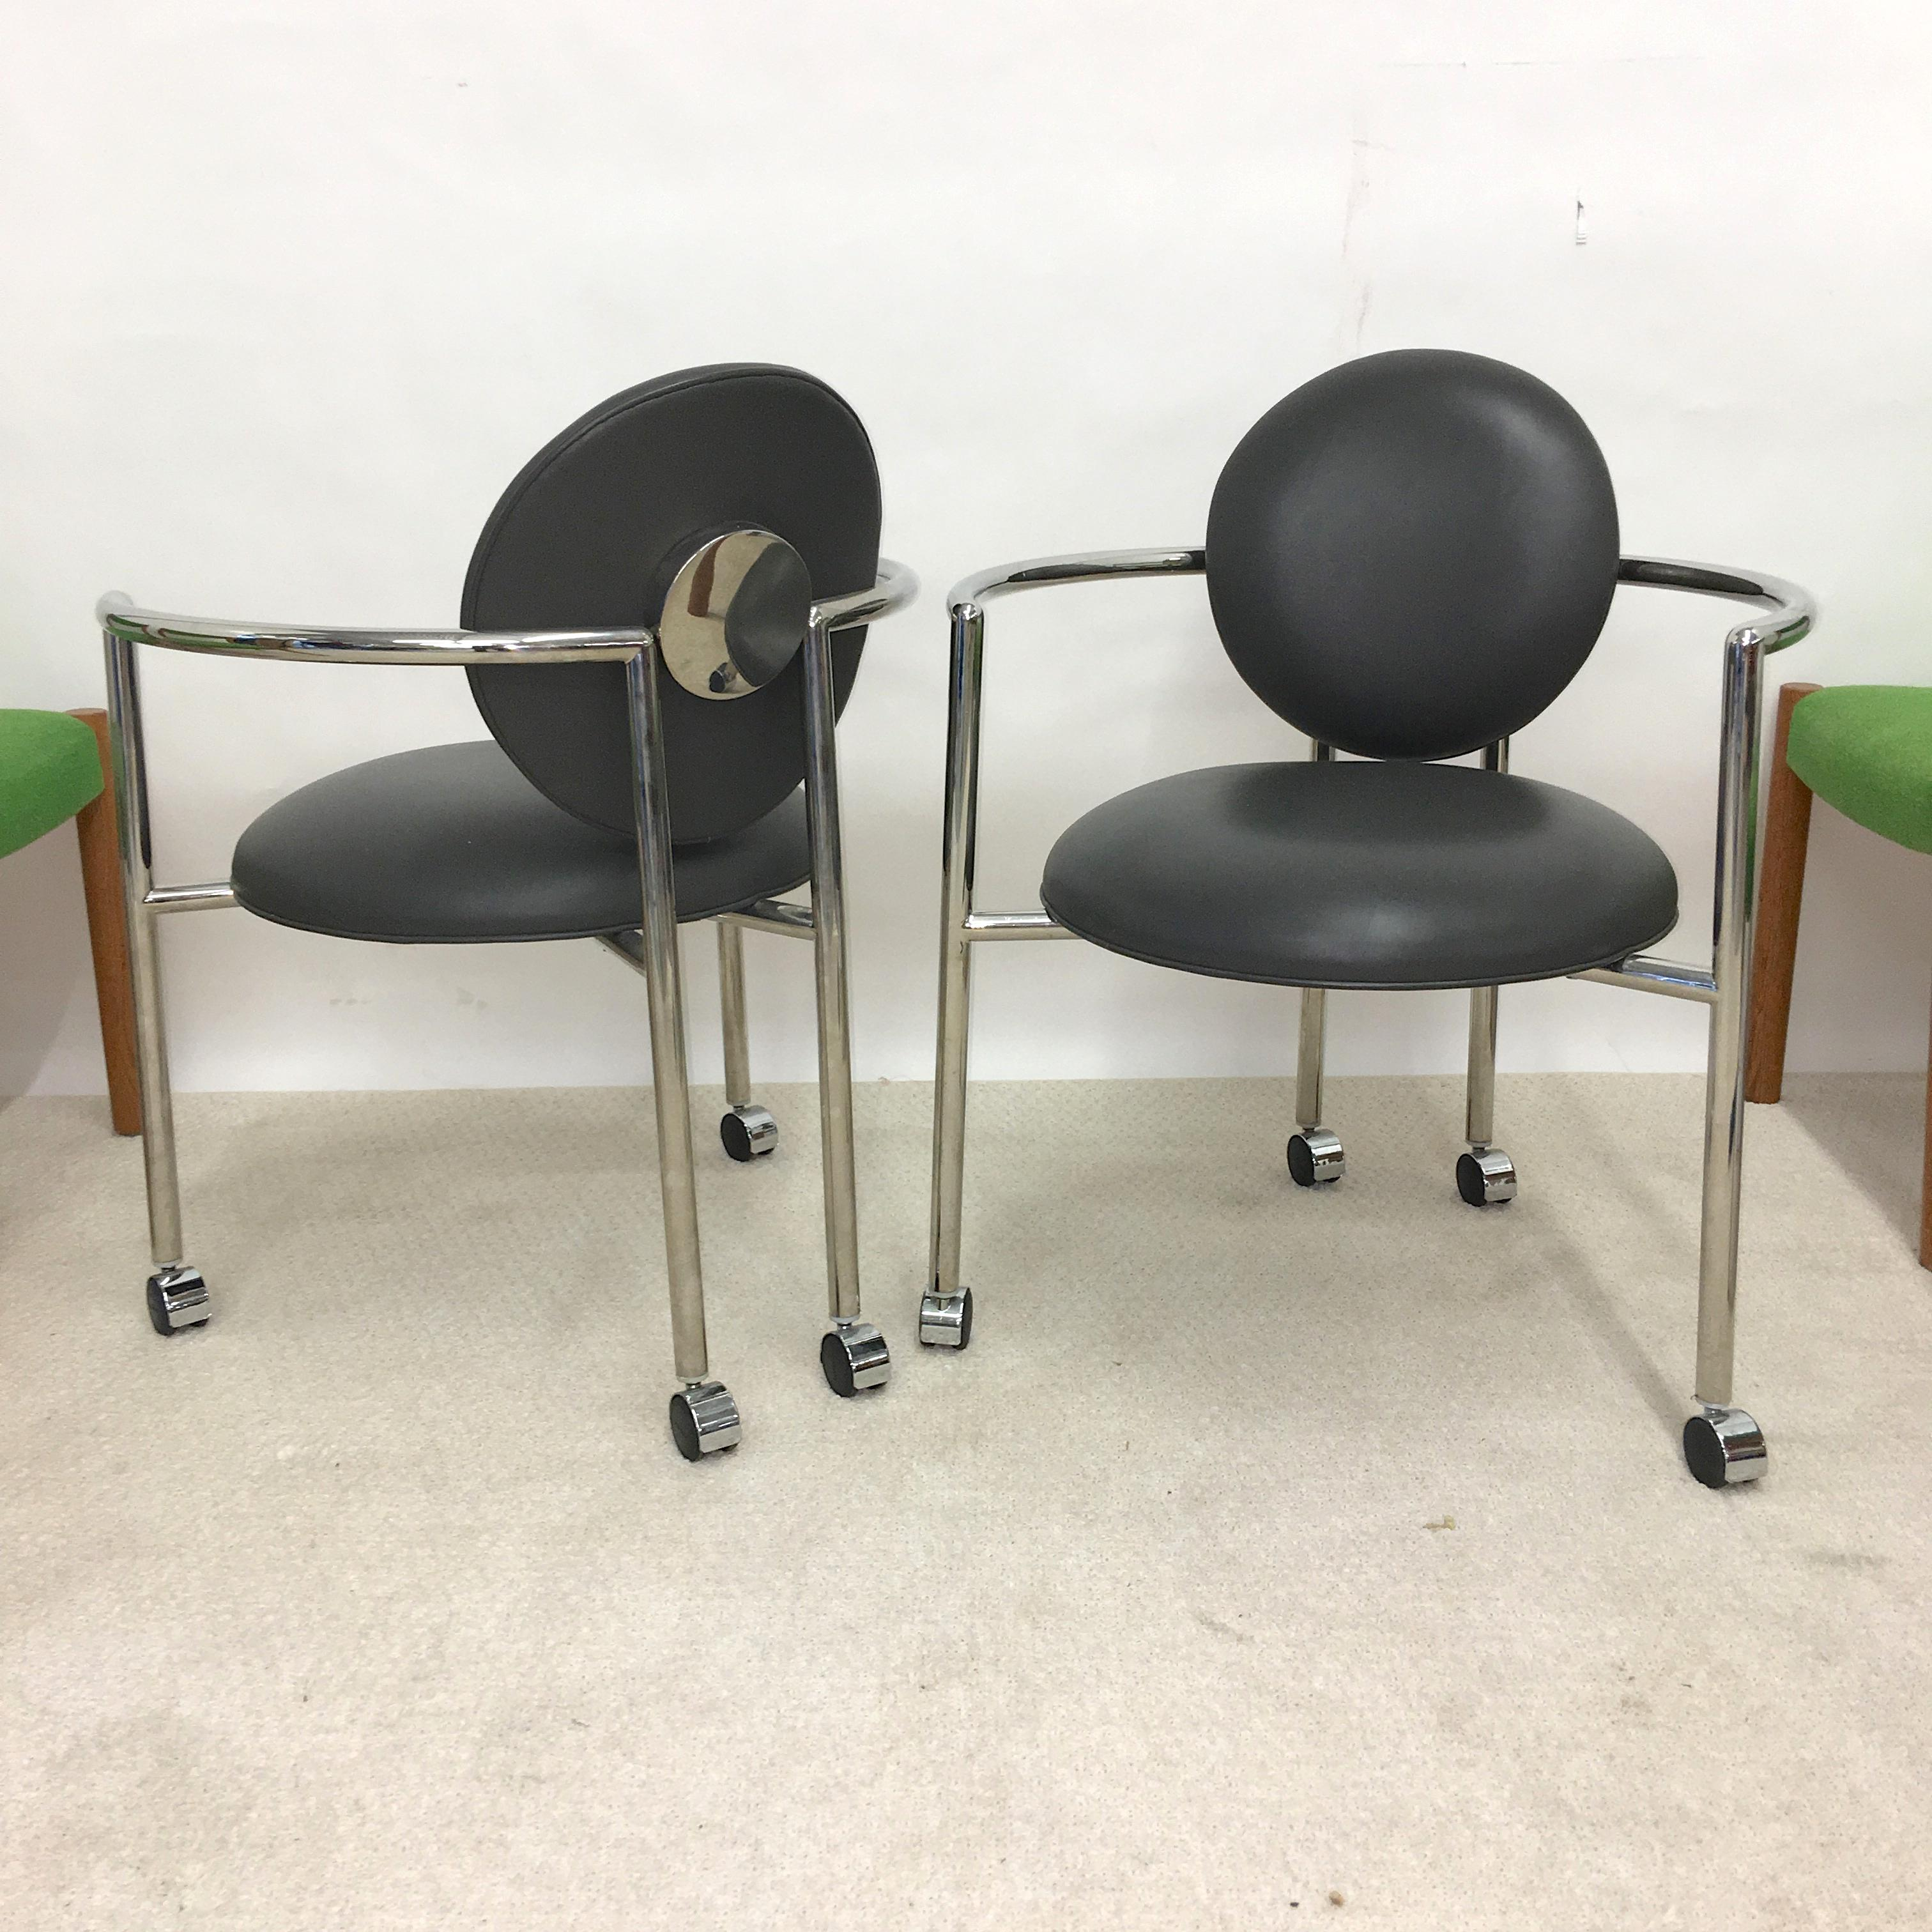 Pair Of Moon Chairs By Stanley Jay Friedman For Brueton At 1stdibs